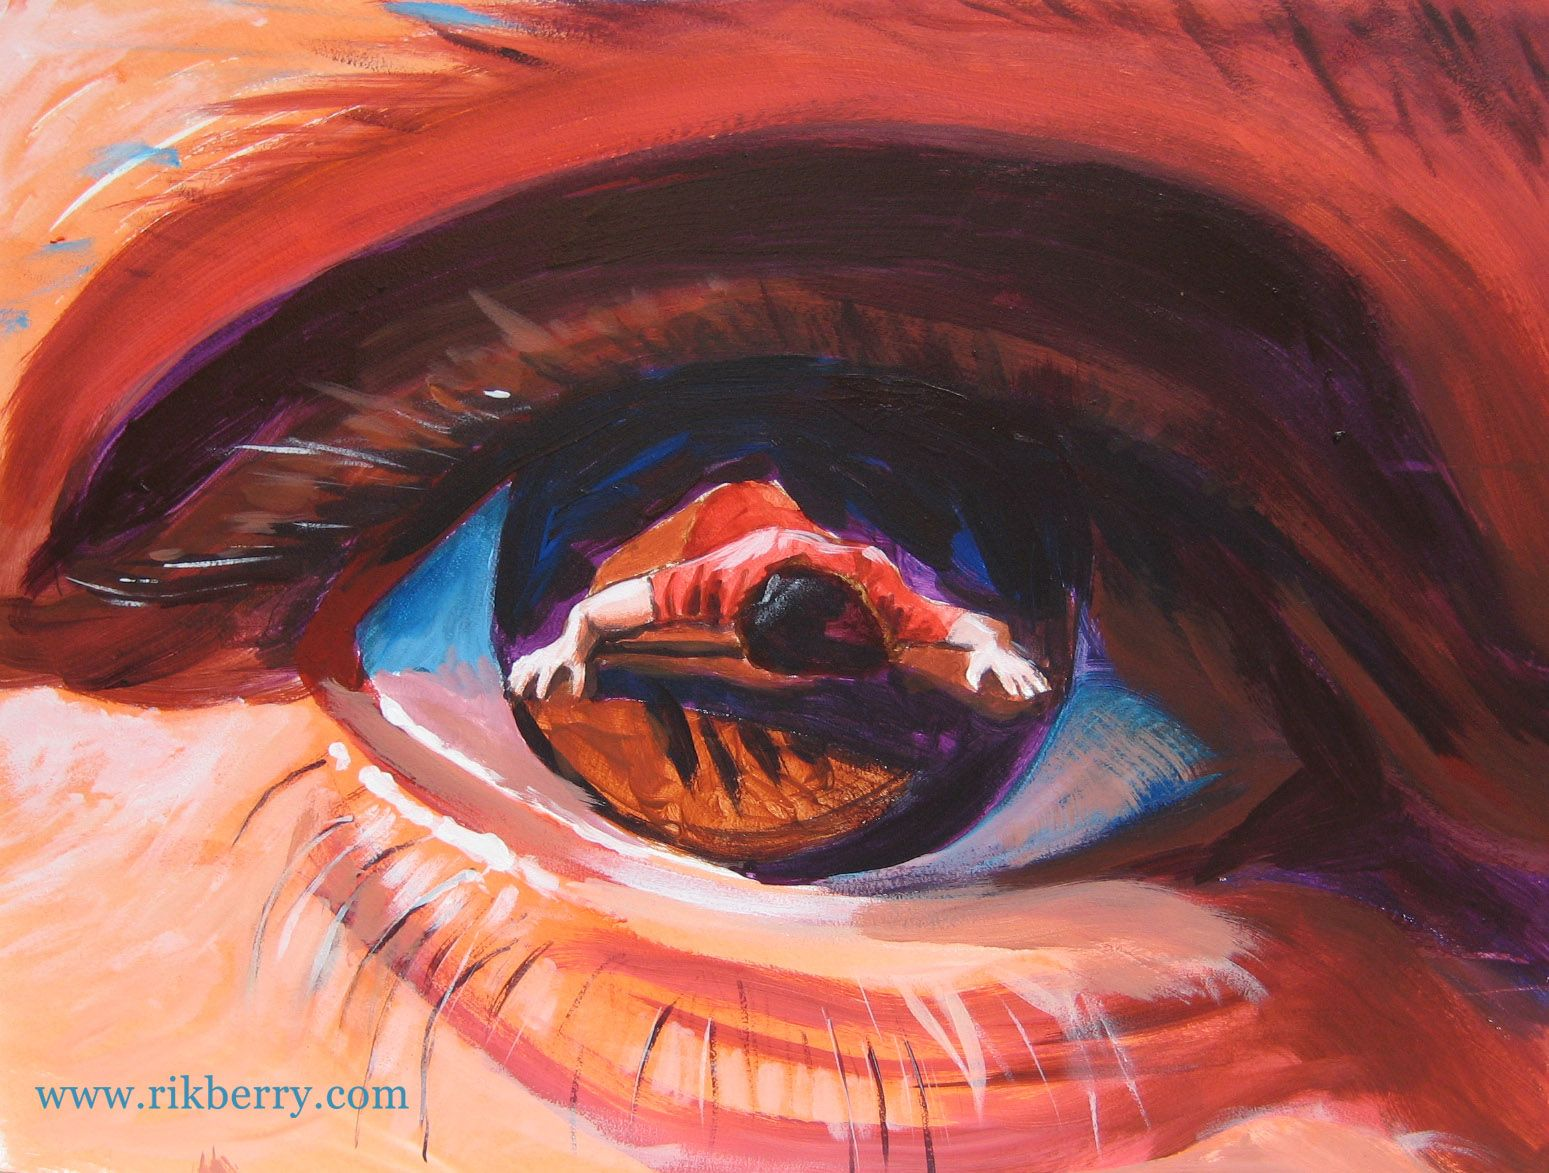 Apple of His eye | Prophetic painting, Prophetic art, Painting